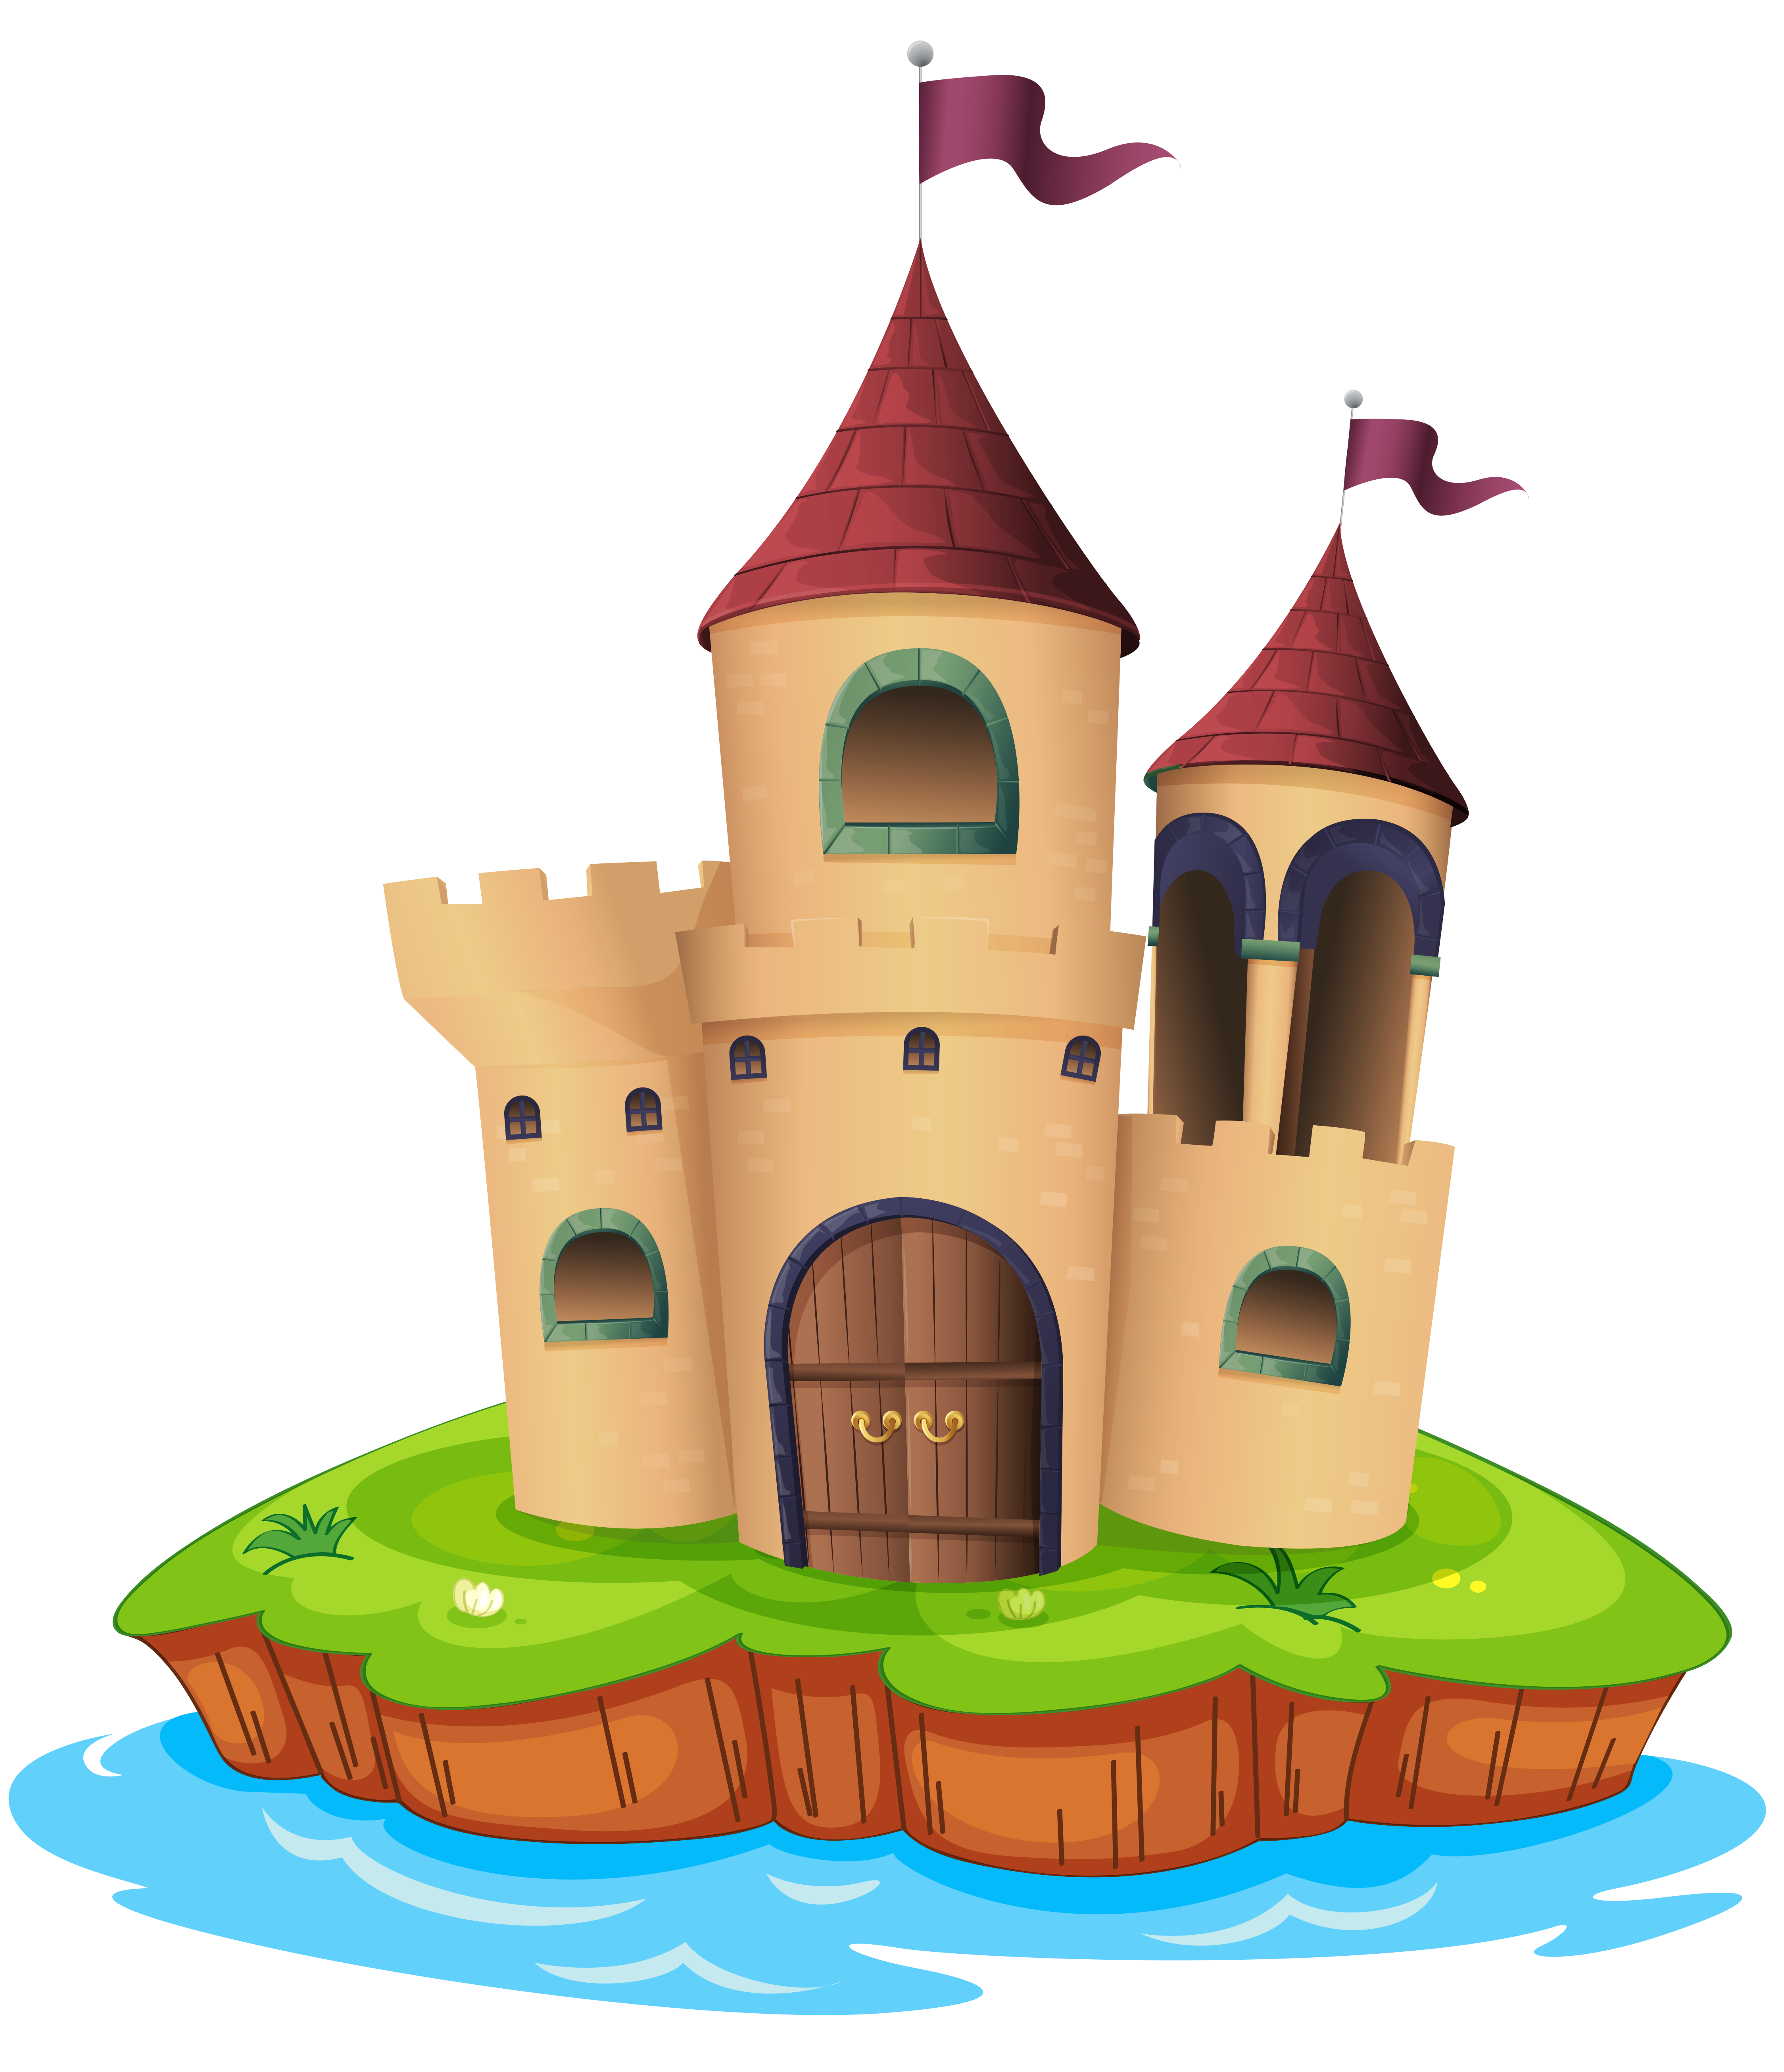 Clipart castle illustration. Transparent and water png